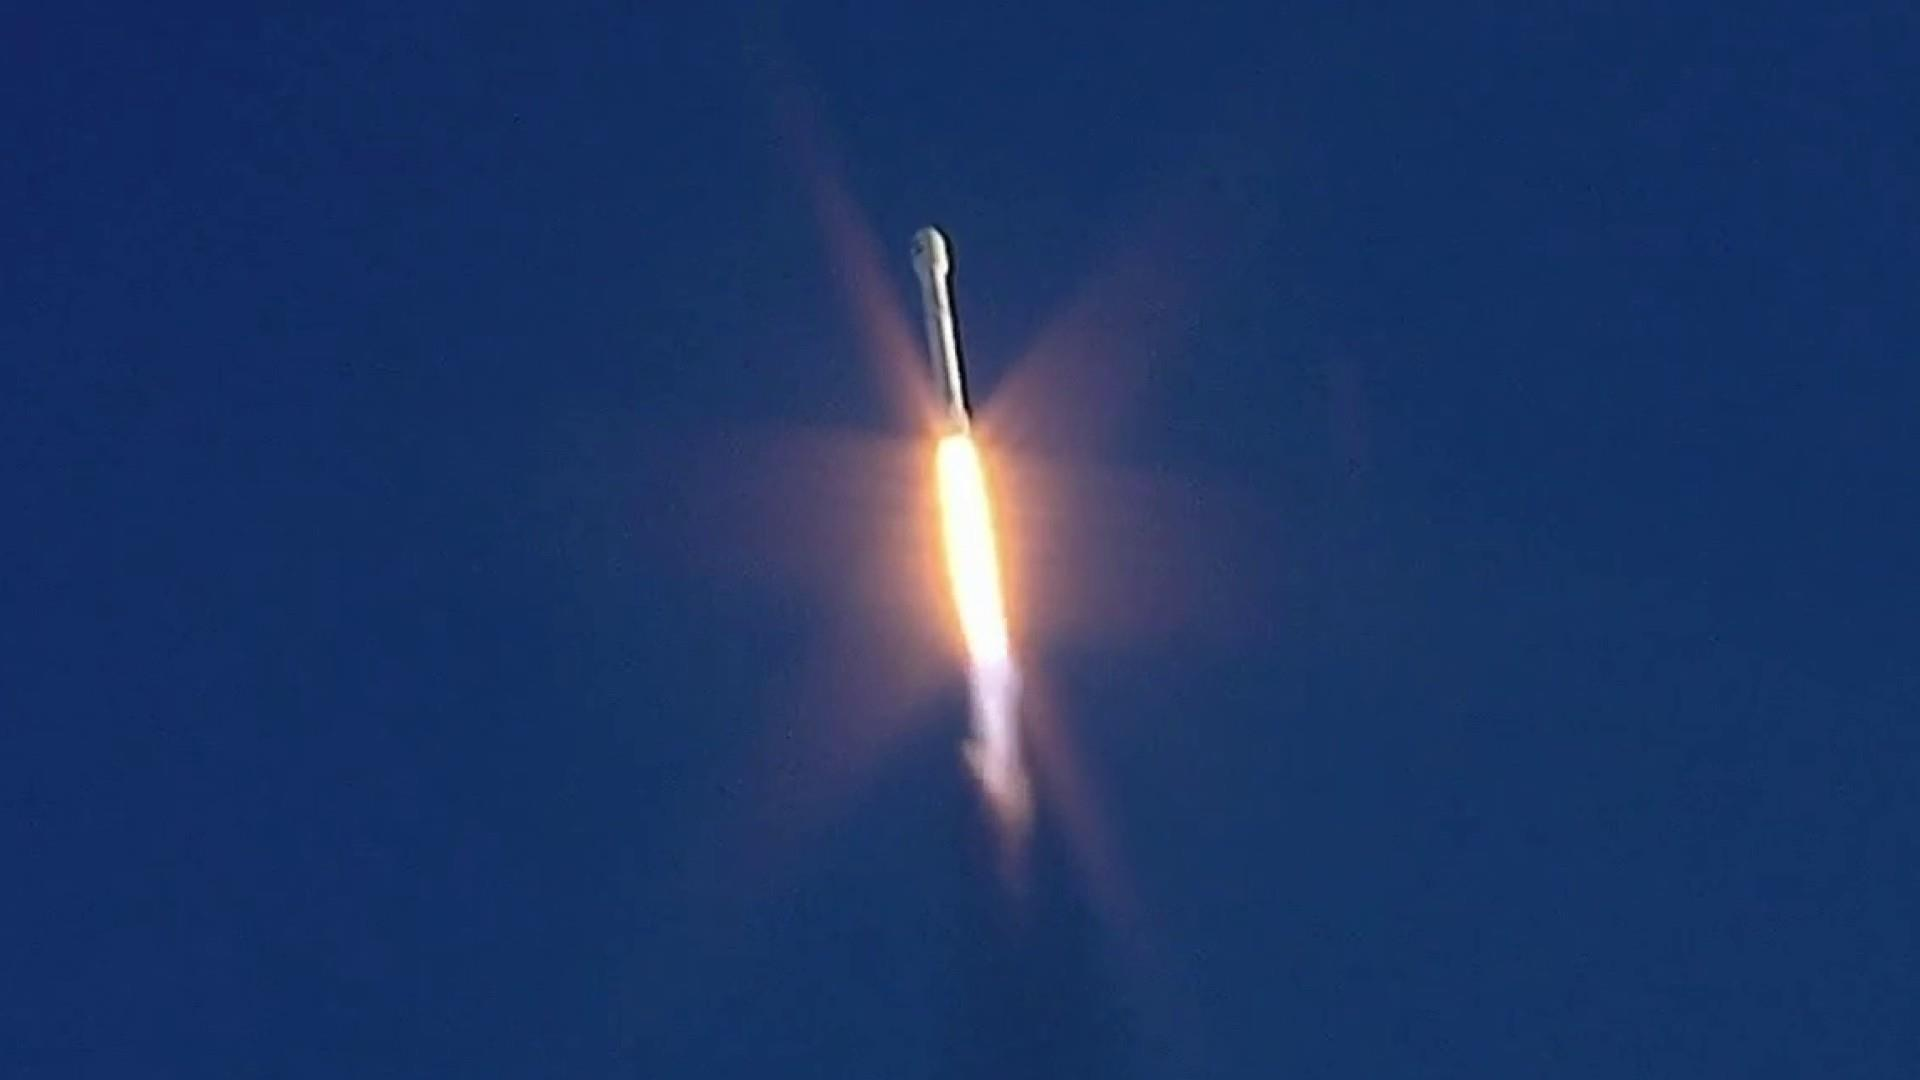 Science! NASA launches new mission to find planets